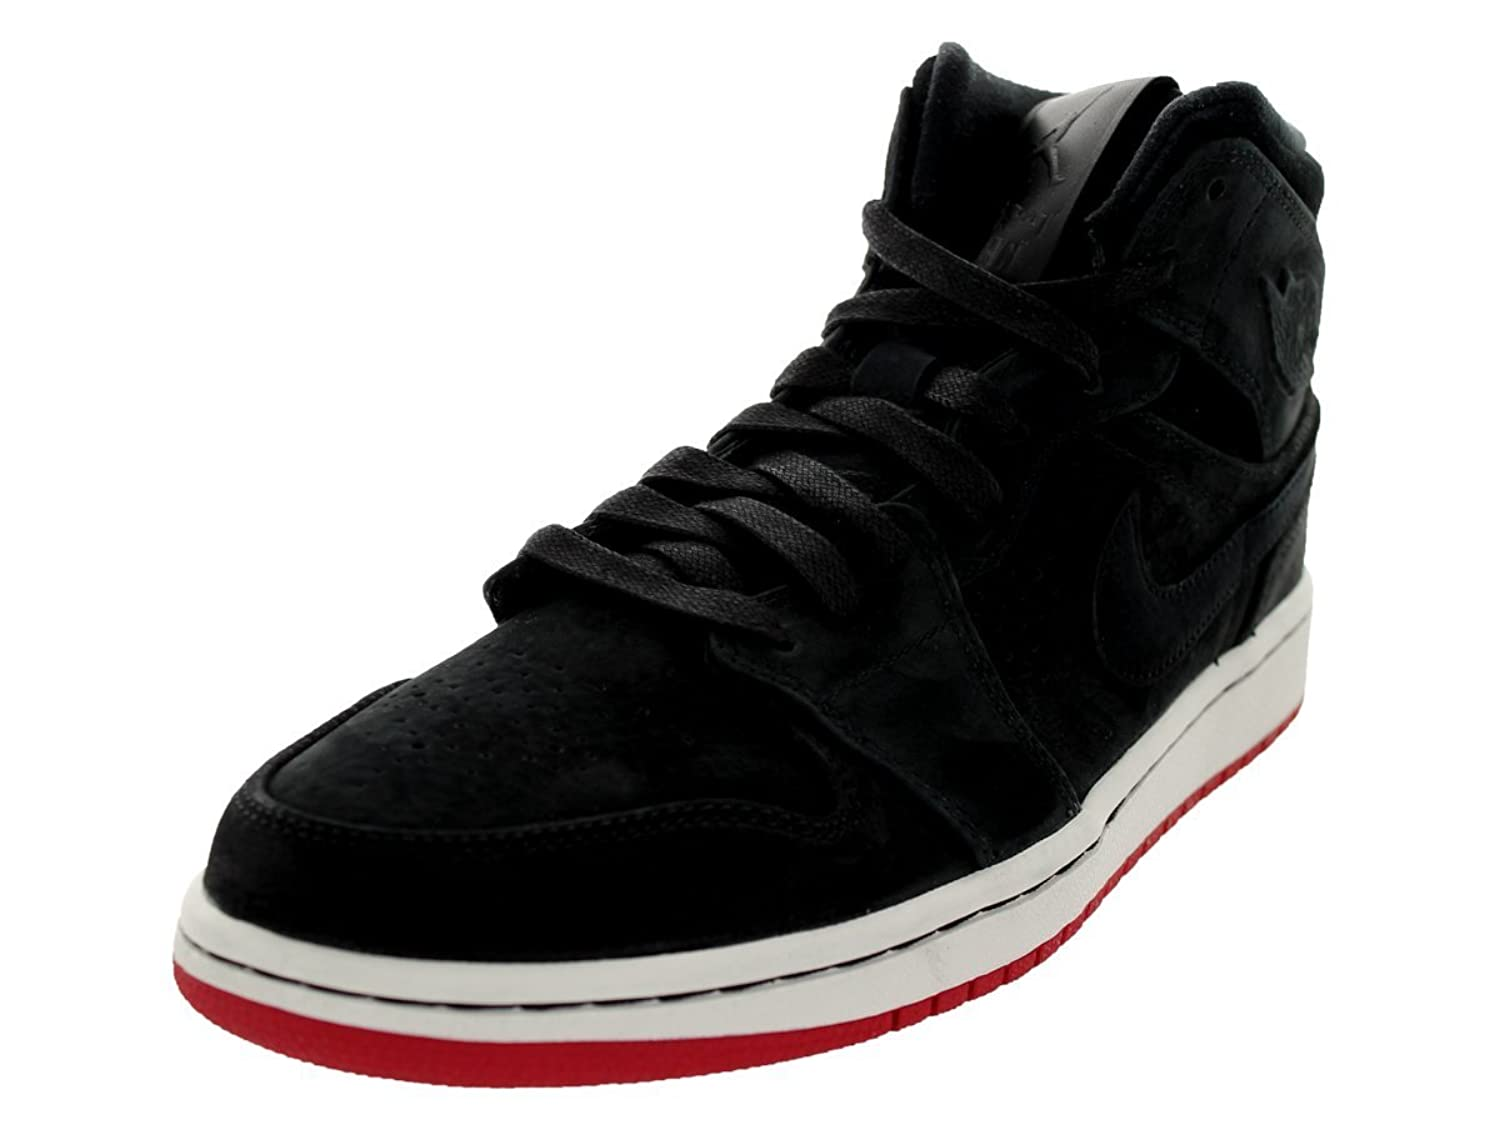 air jordan 1 mid nouveau black/black-gym red-sails-salon